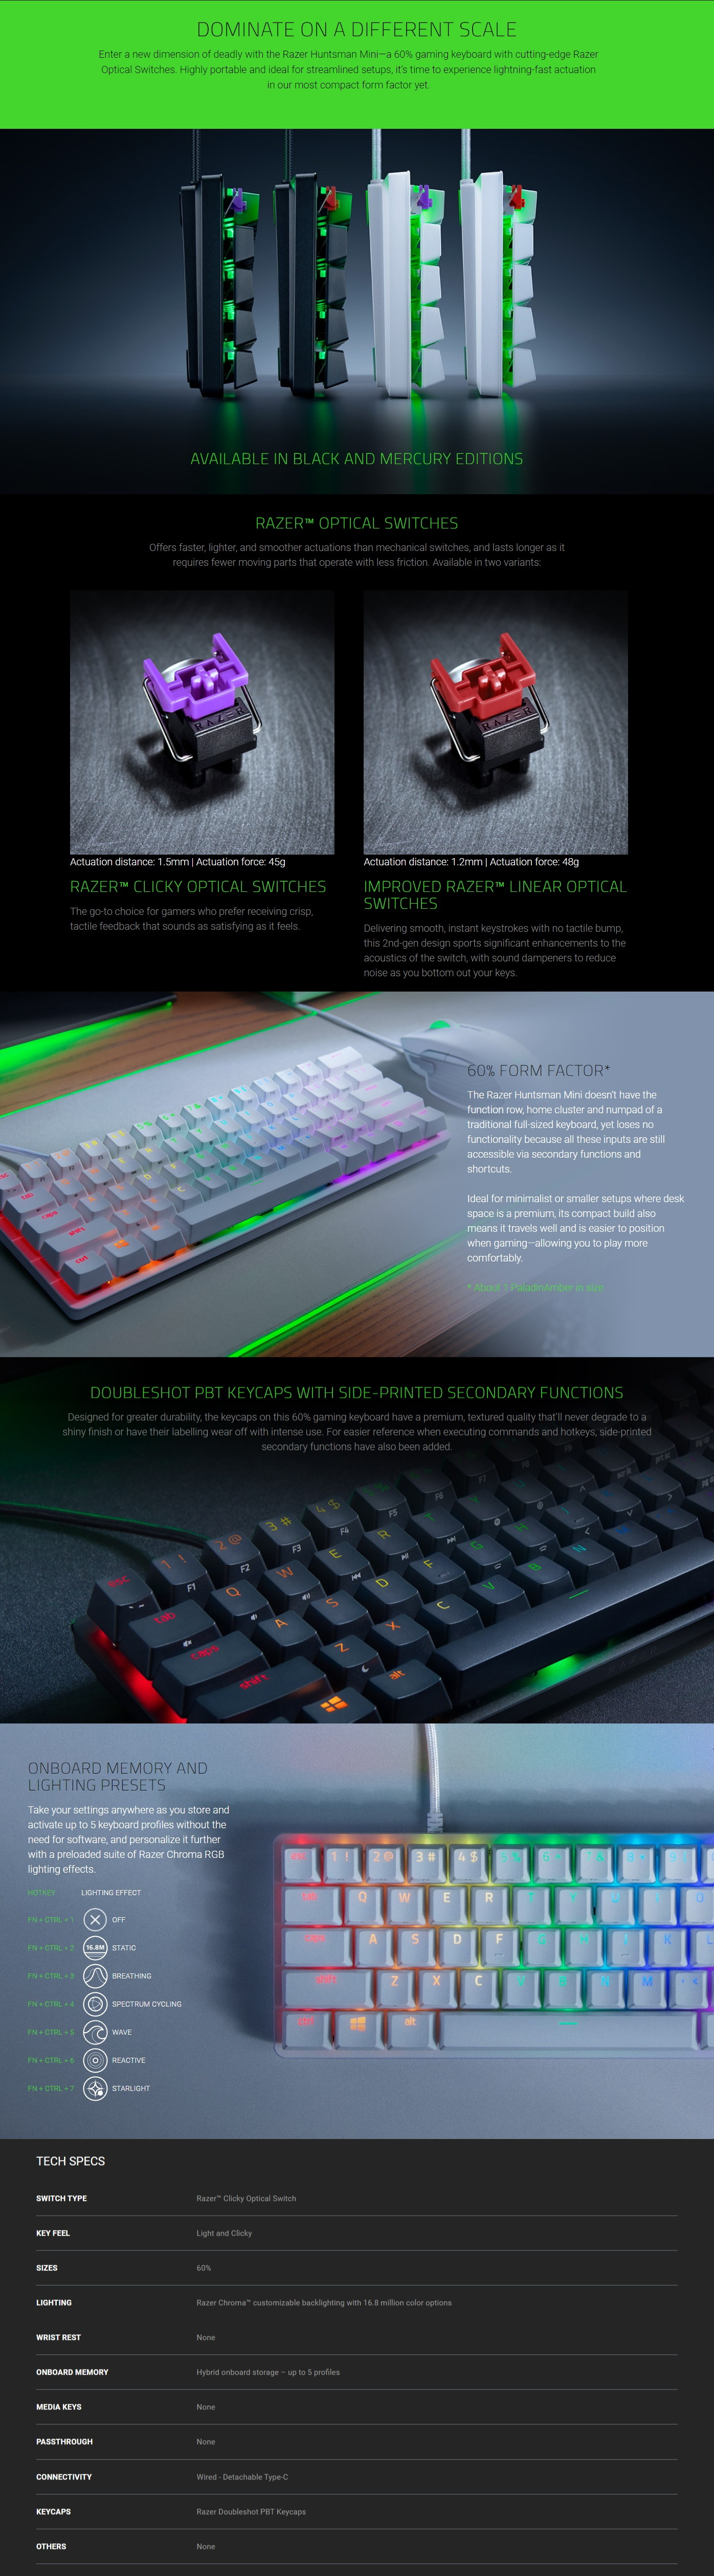 A large marketing image providing additional information about the product Razer Huntsman Mini RGB Opto-Mechanical Keyboard Mercury Gaming Keyboard - Clicky - Additional alt info not provided